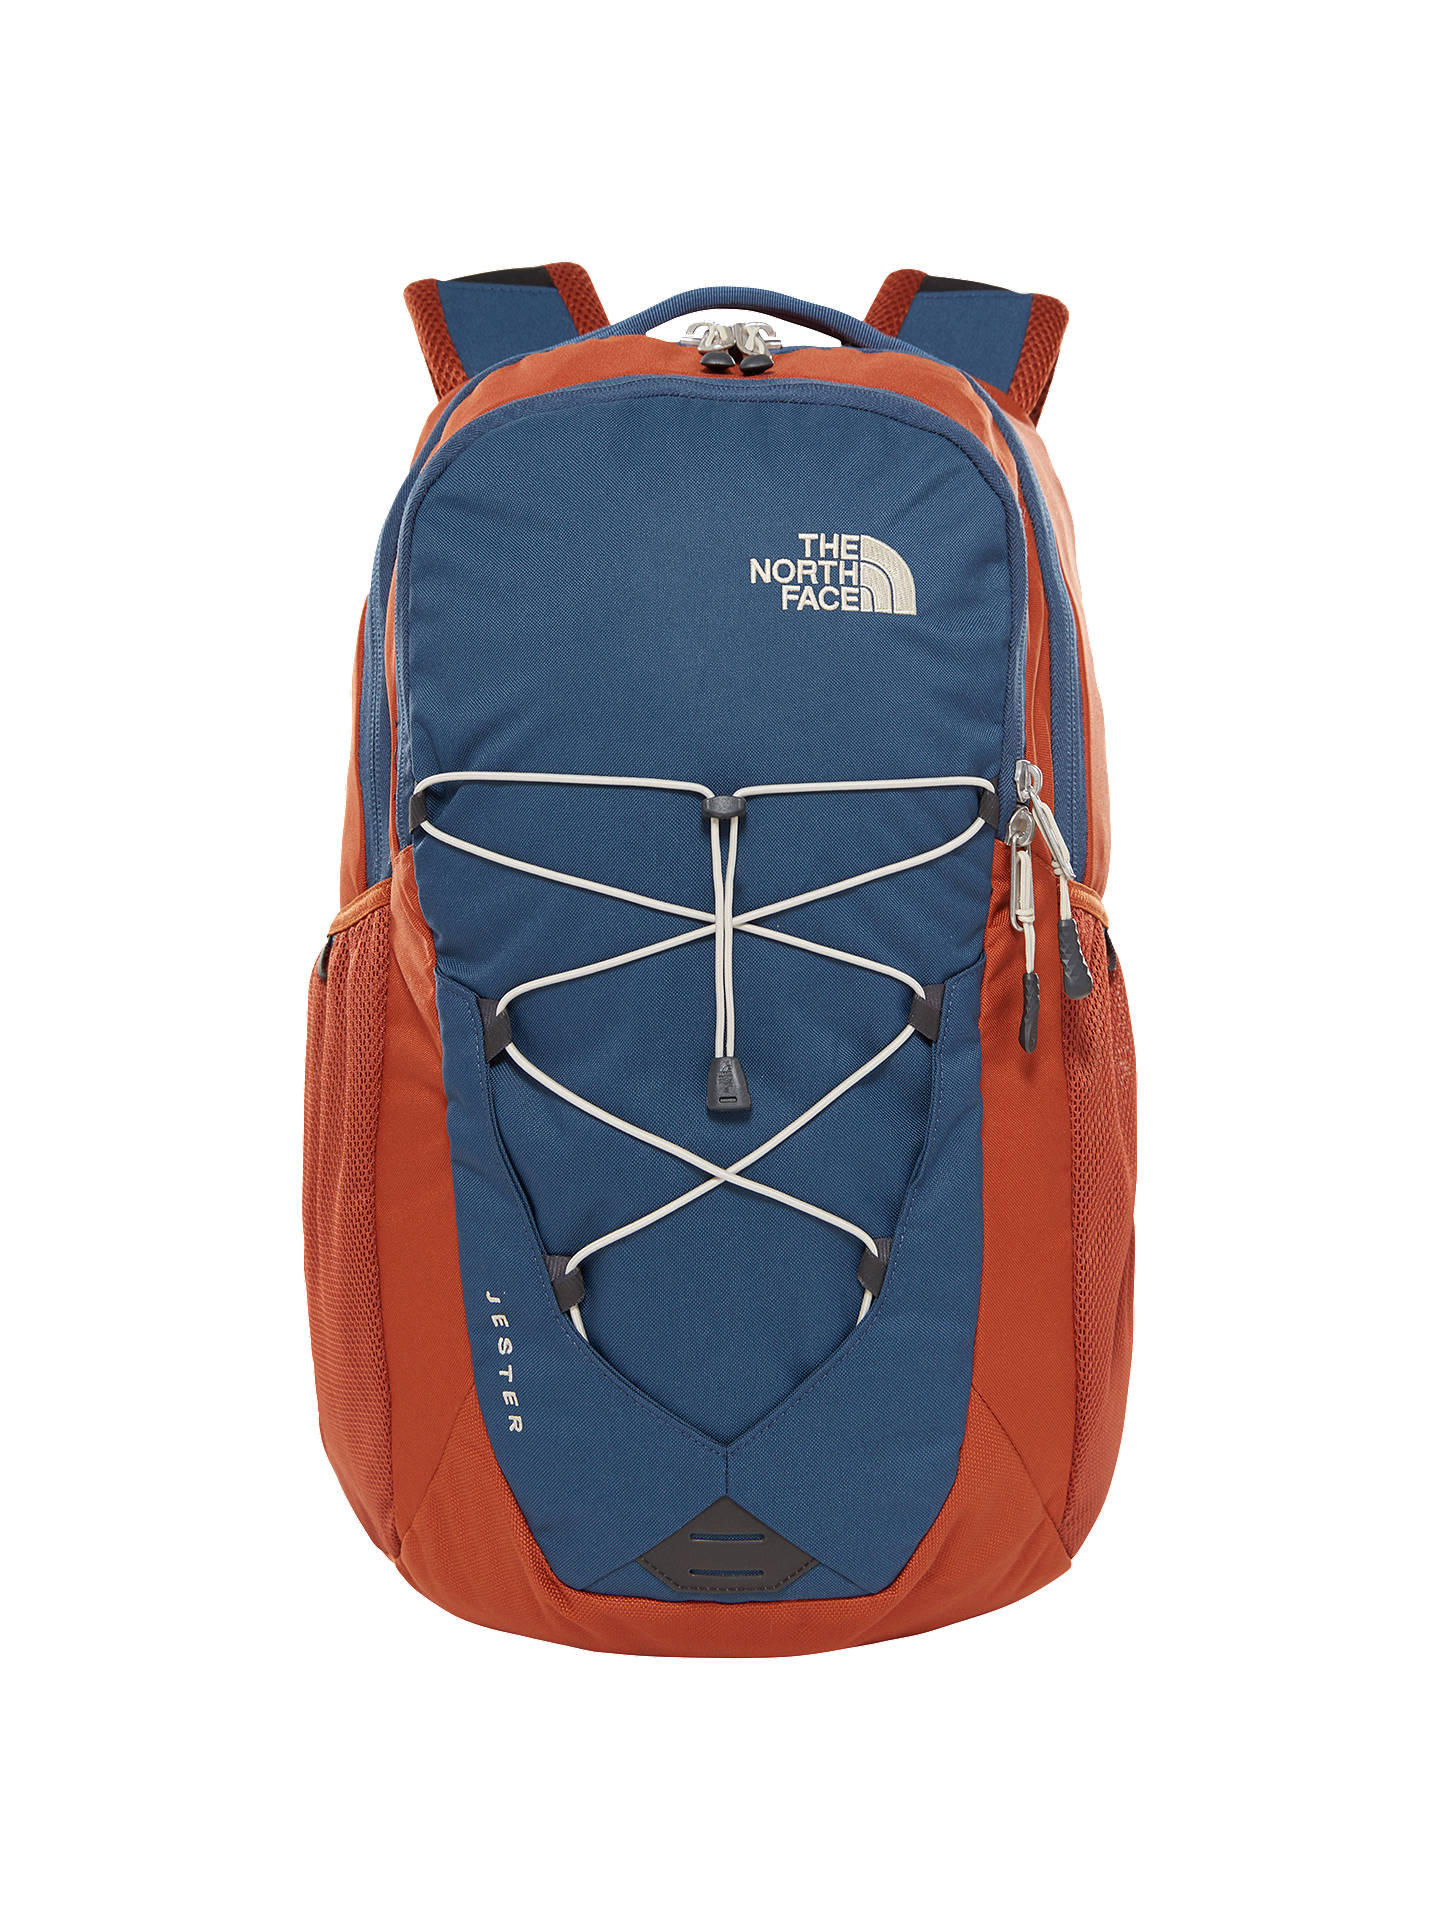 BuyThe North Face Jester Backpack, Shady Blue Online at johnlewis.com